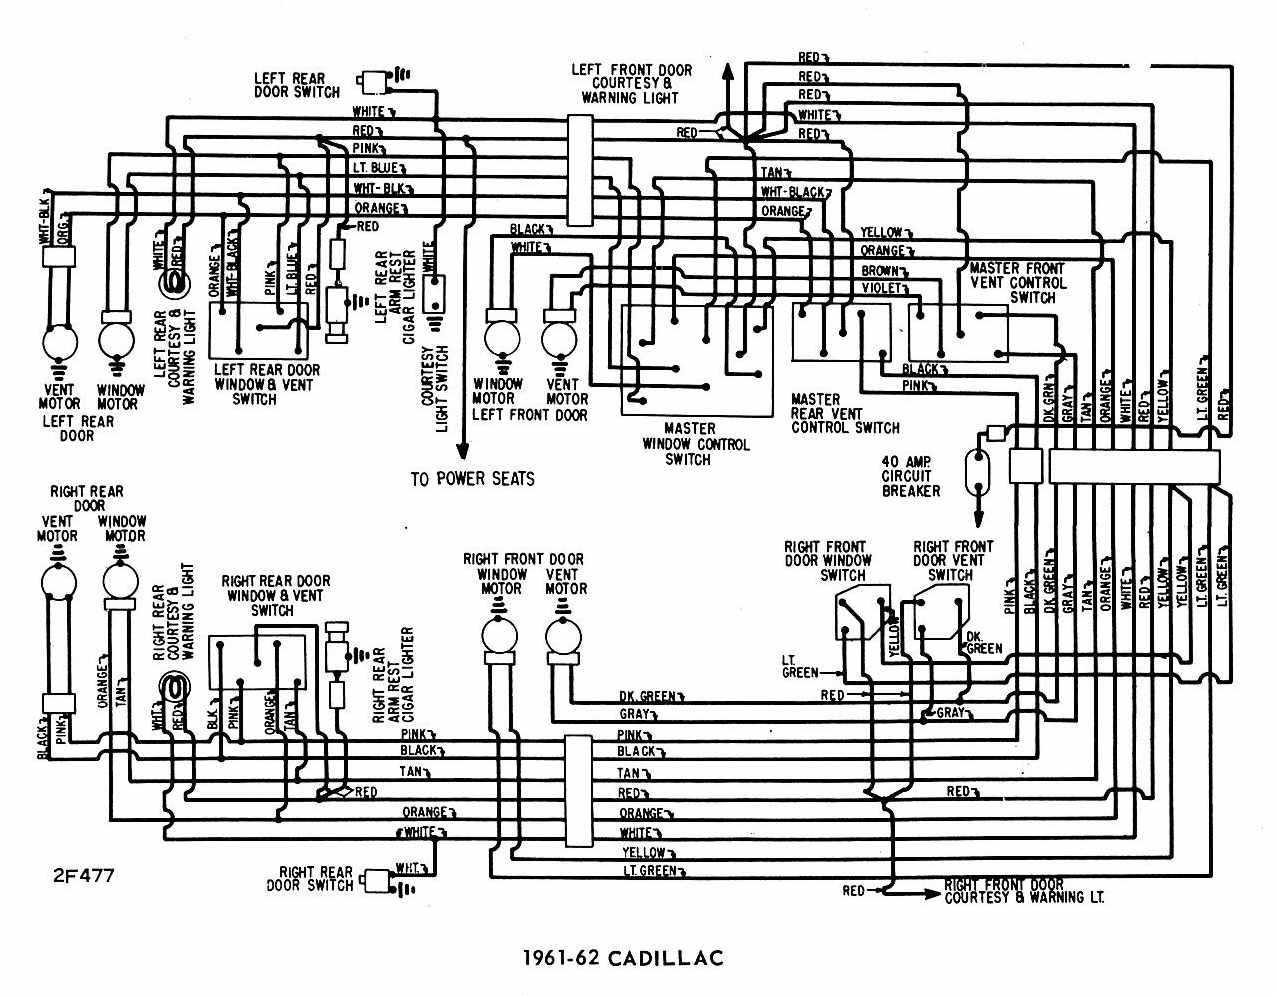 2004 Cadillac Escalade Alternator Wiring Diagram 48 Fuse Box Windows Of 1961 62 Cadillact1508149295 Car Manuals